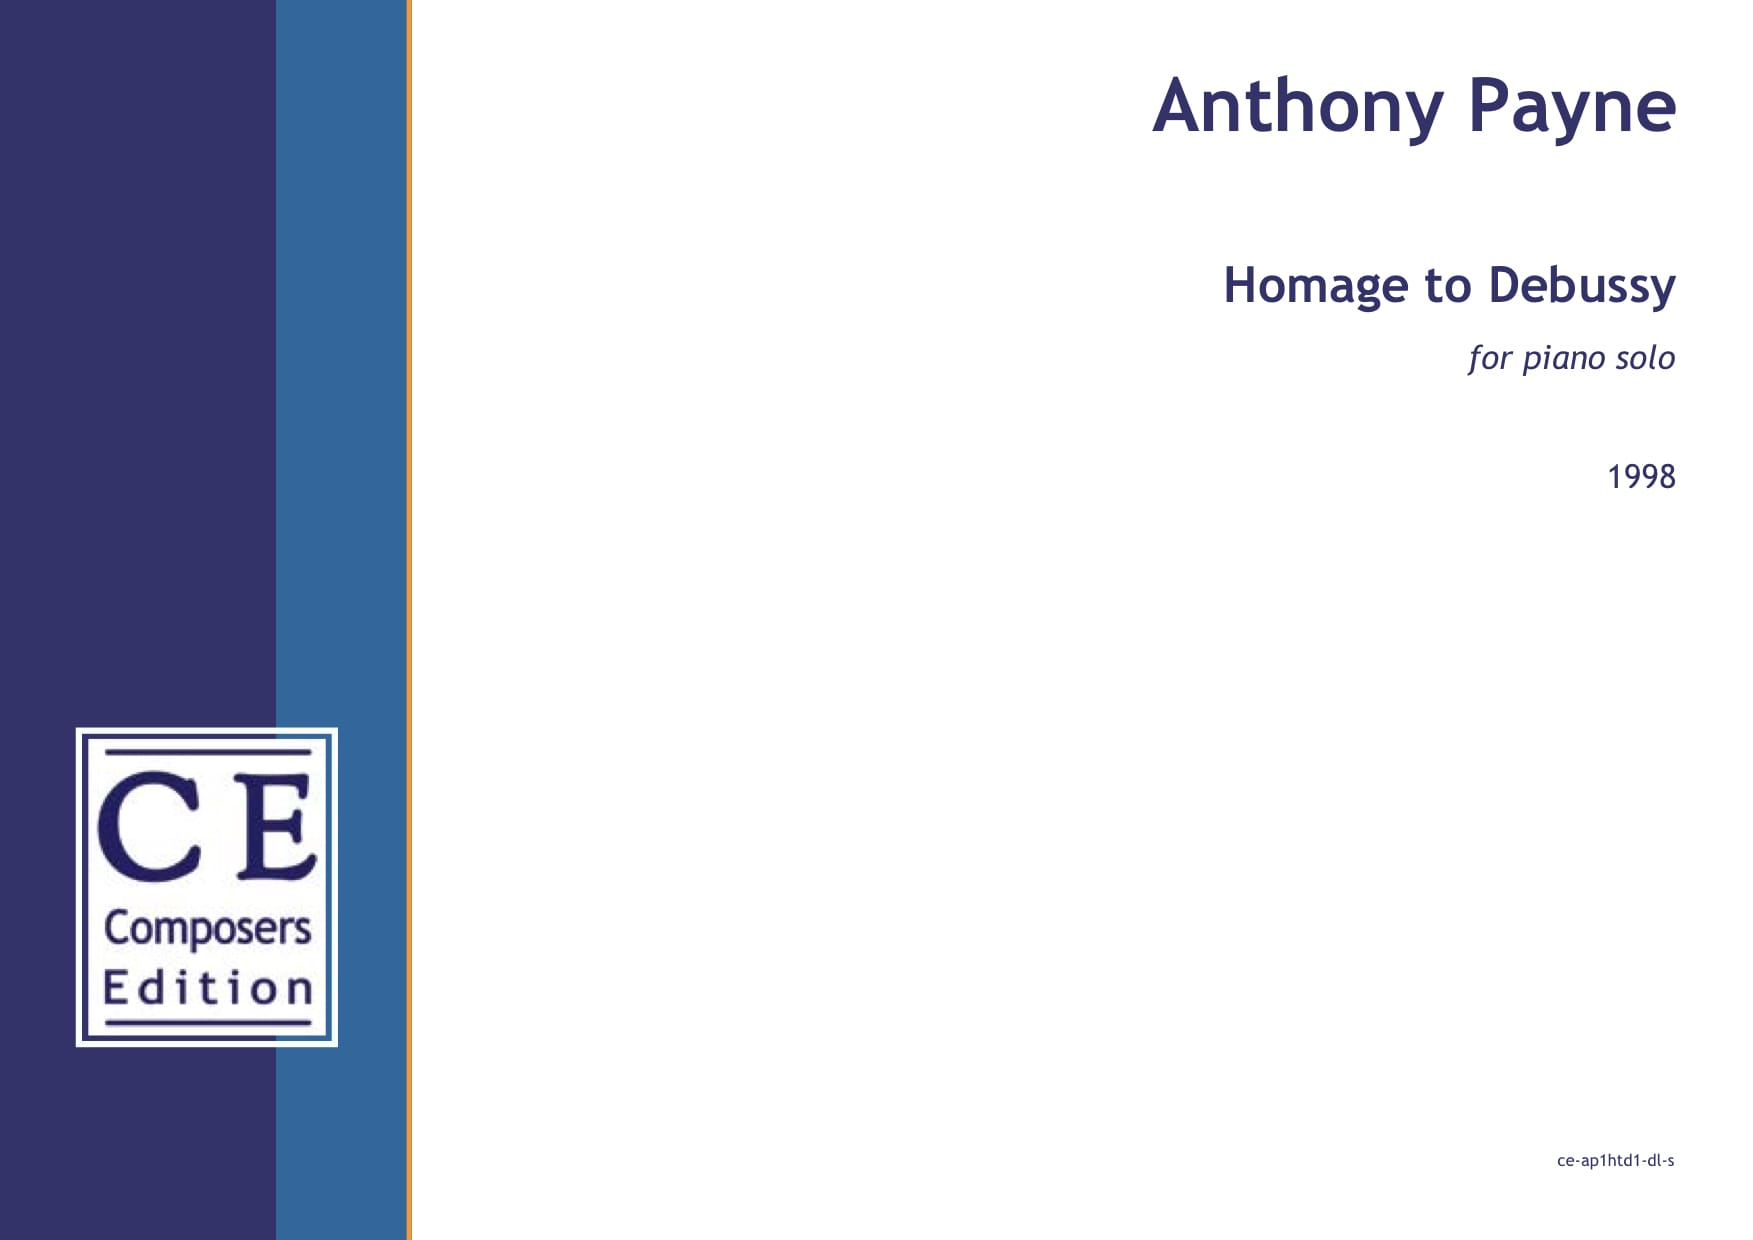 Anthony Payne: Homage to Debussy for piano solo